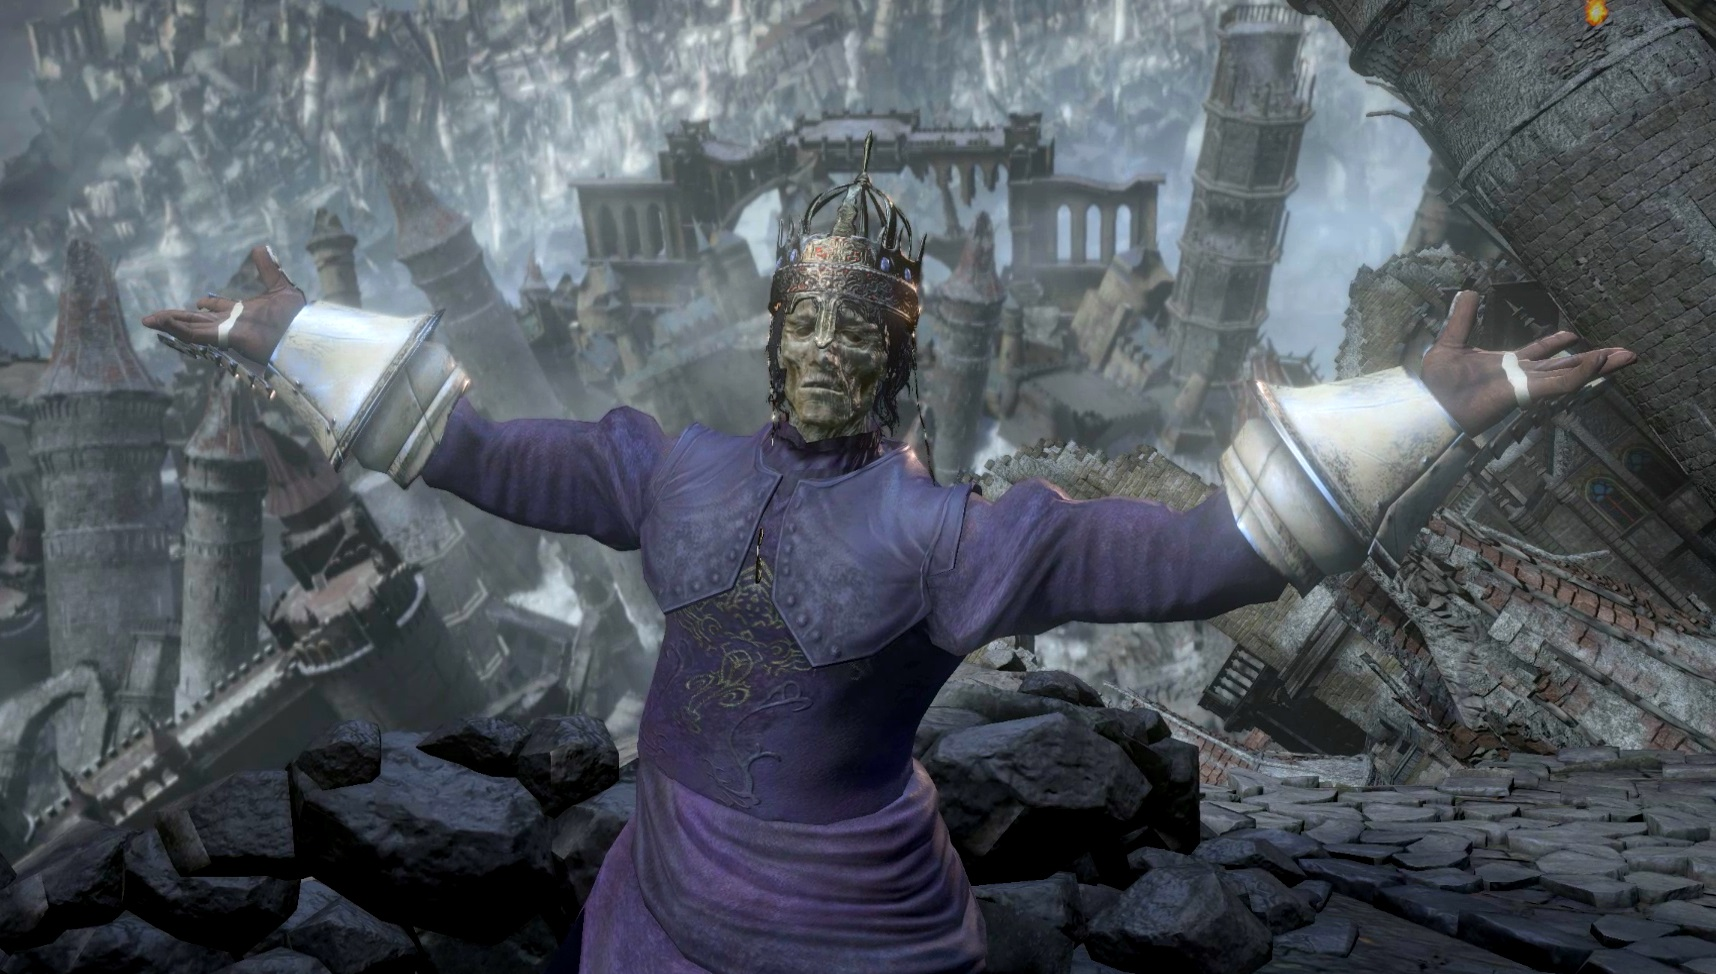 This Dark Souls 3 speedrunner now holds all 8 world records